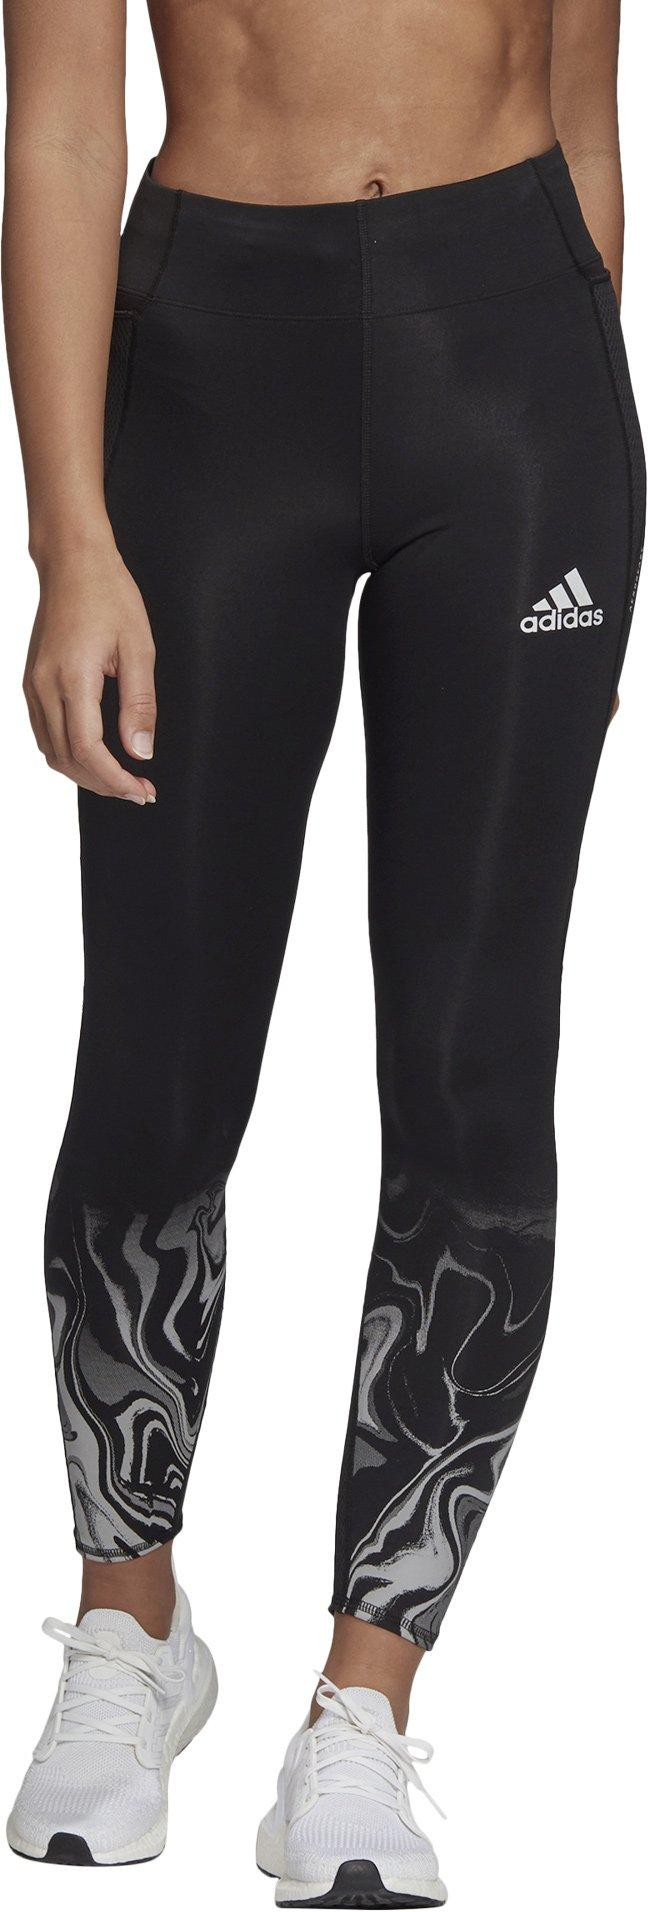 adidas How We Do Tight 7/8 Glam On Women M